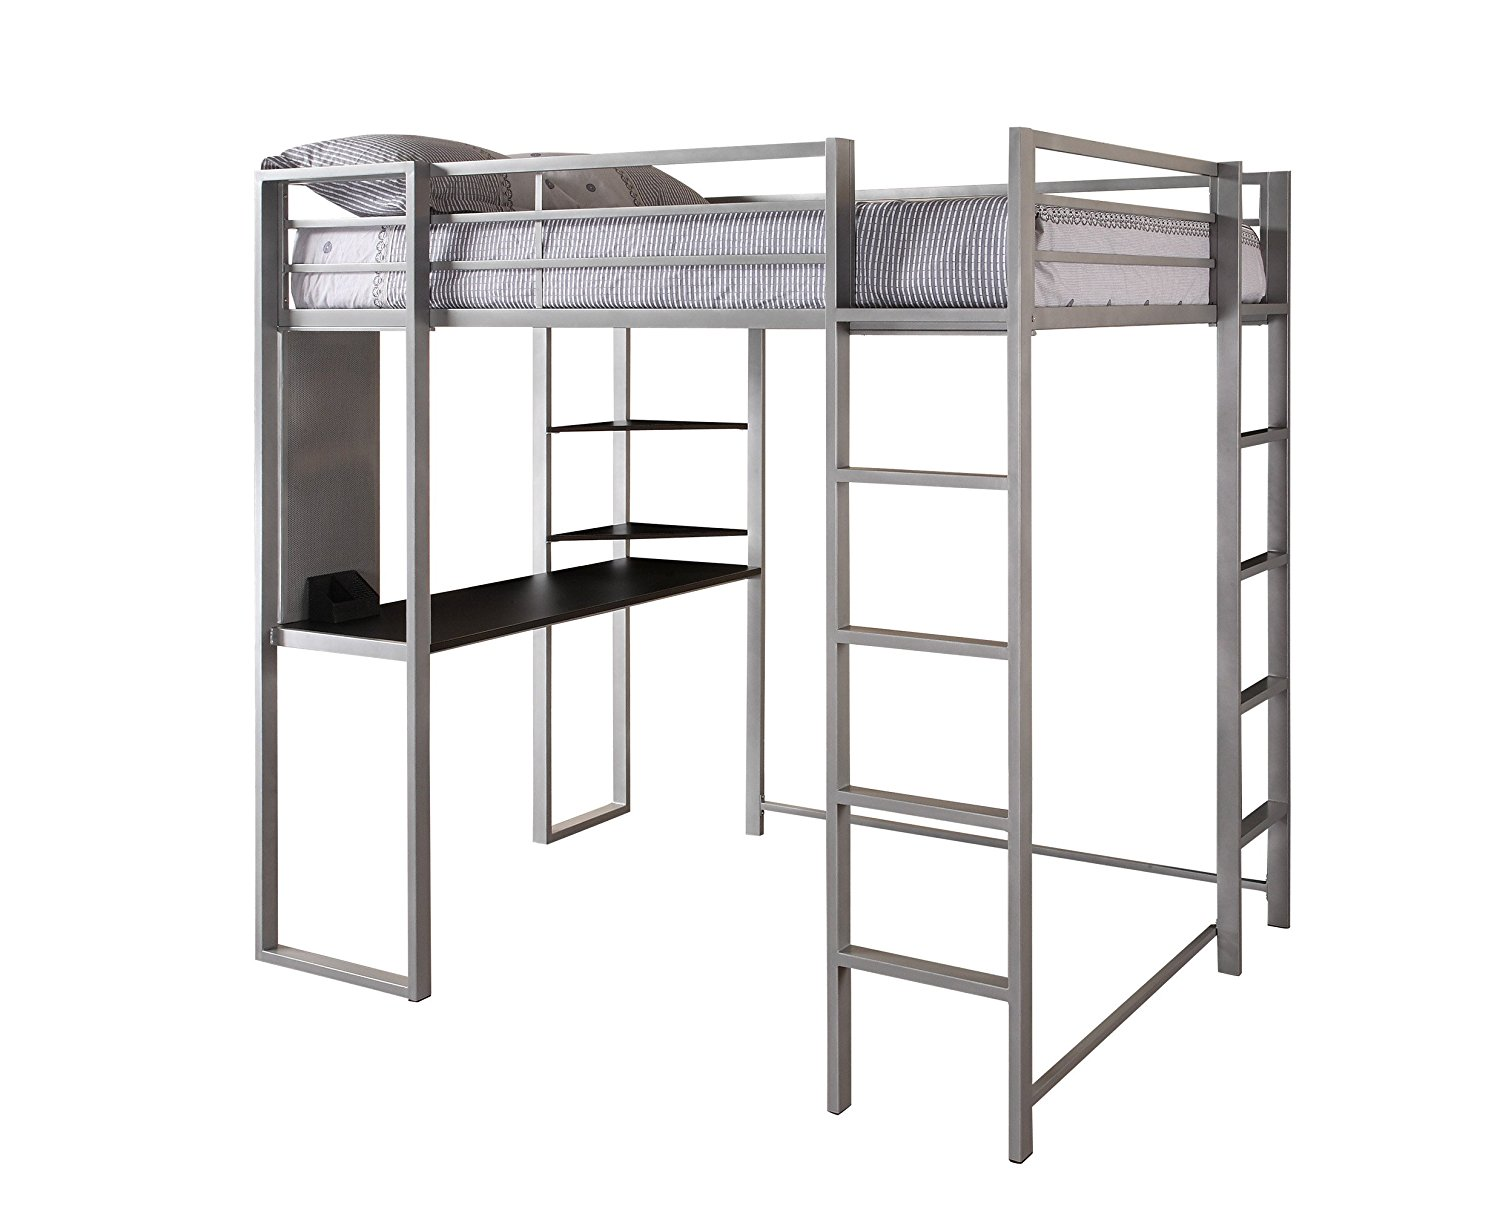 Dorel Home Products Abode Full Size Loft Bed, Silver